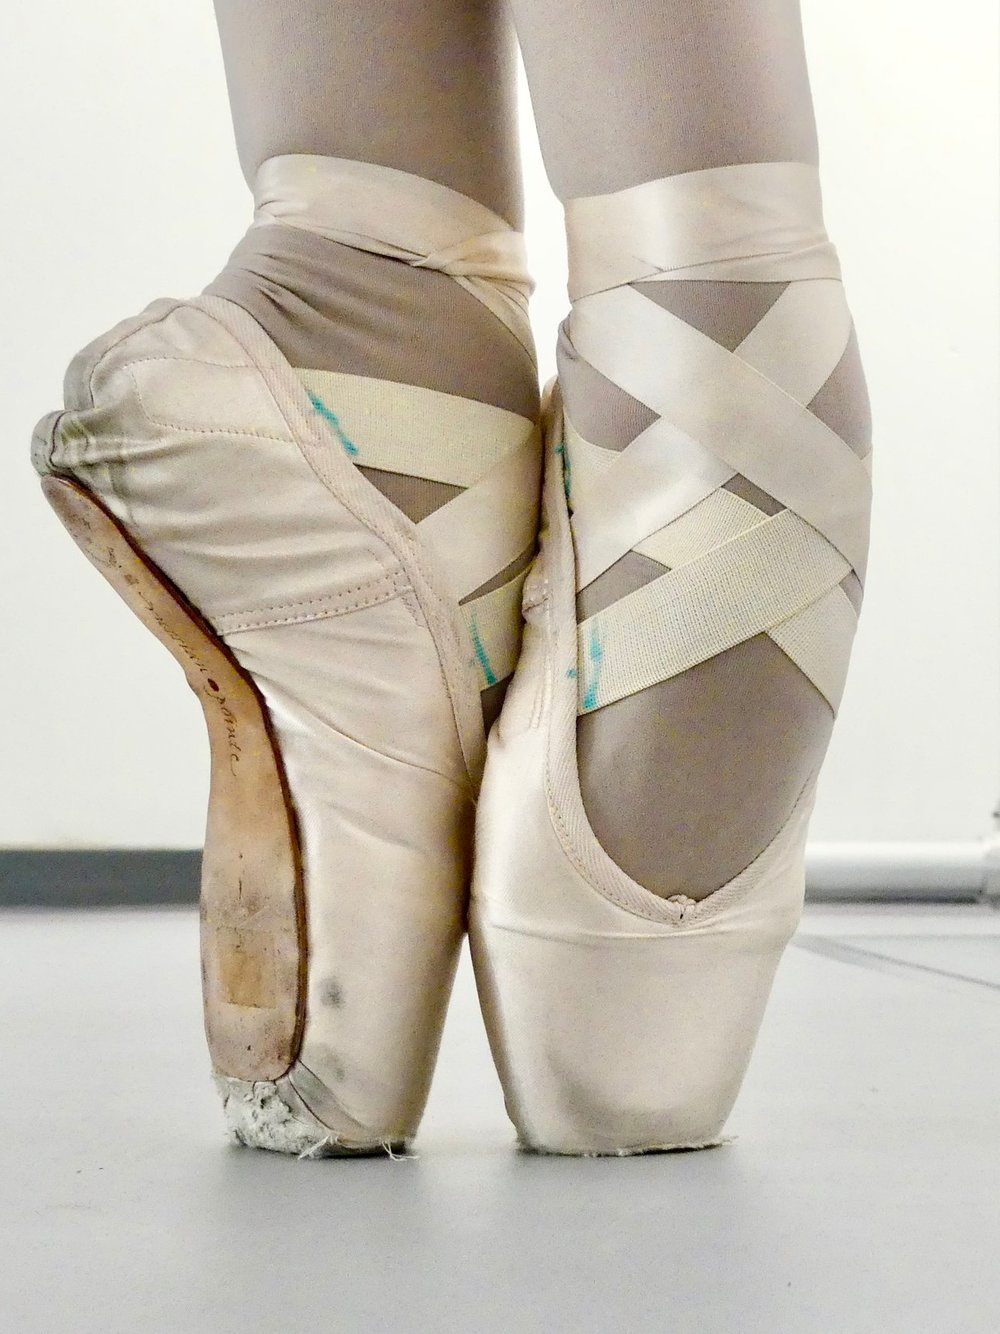 Adult Pointe Shoes.jpg